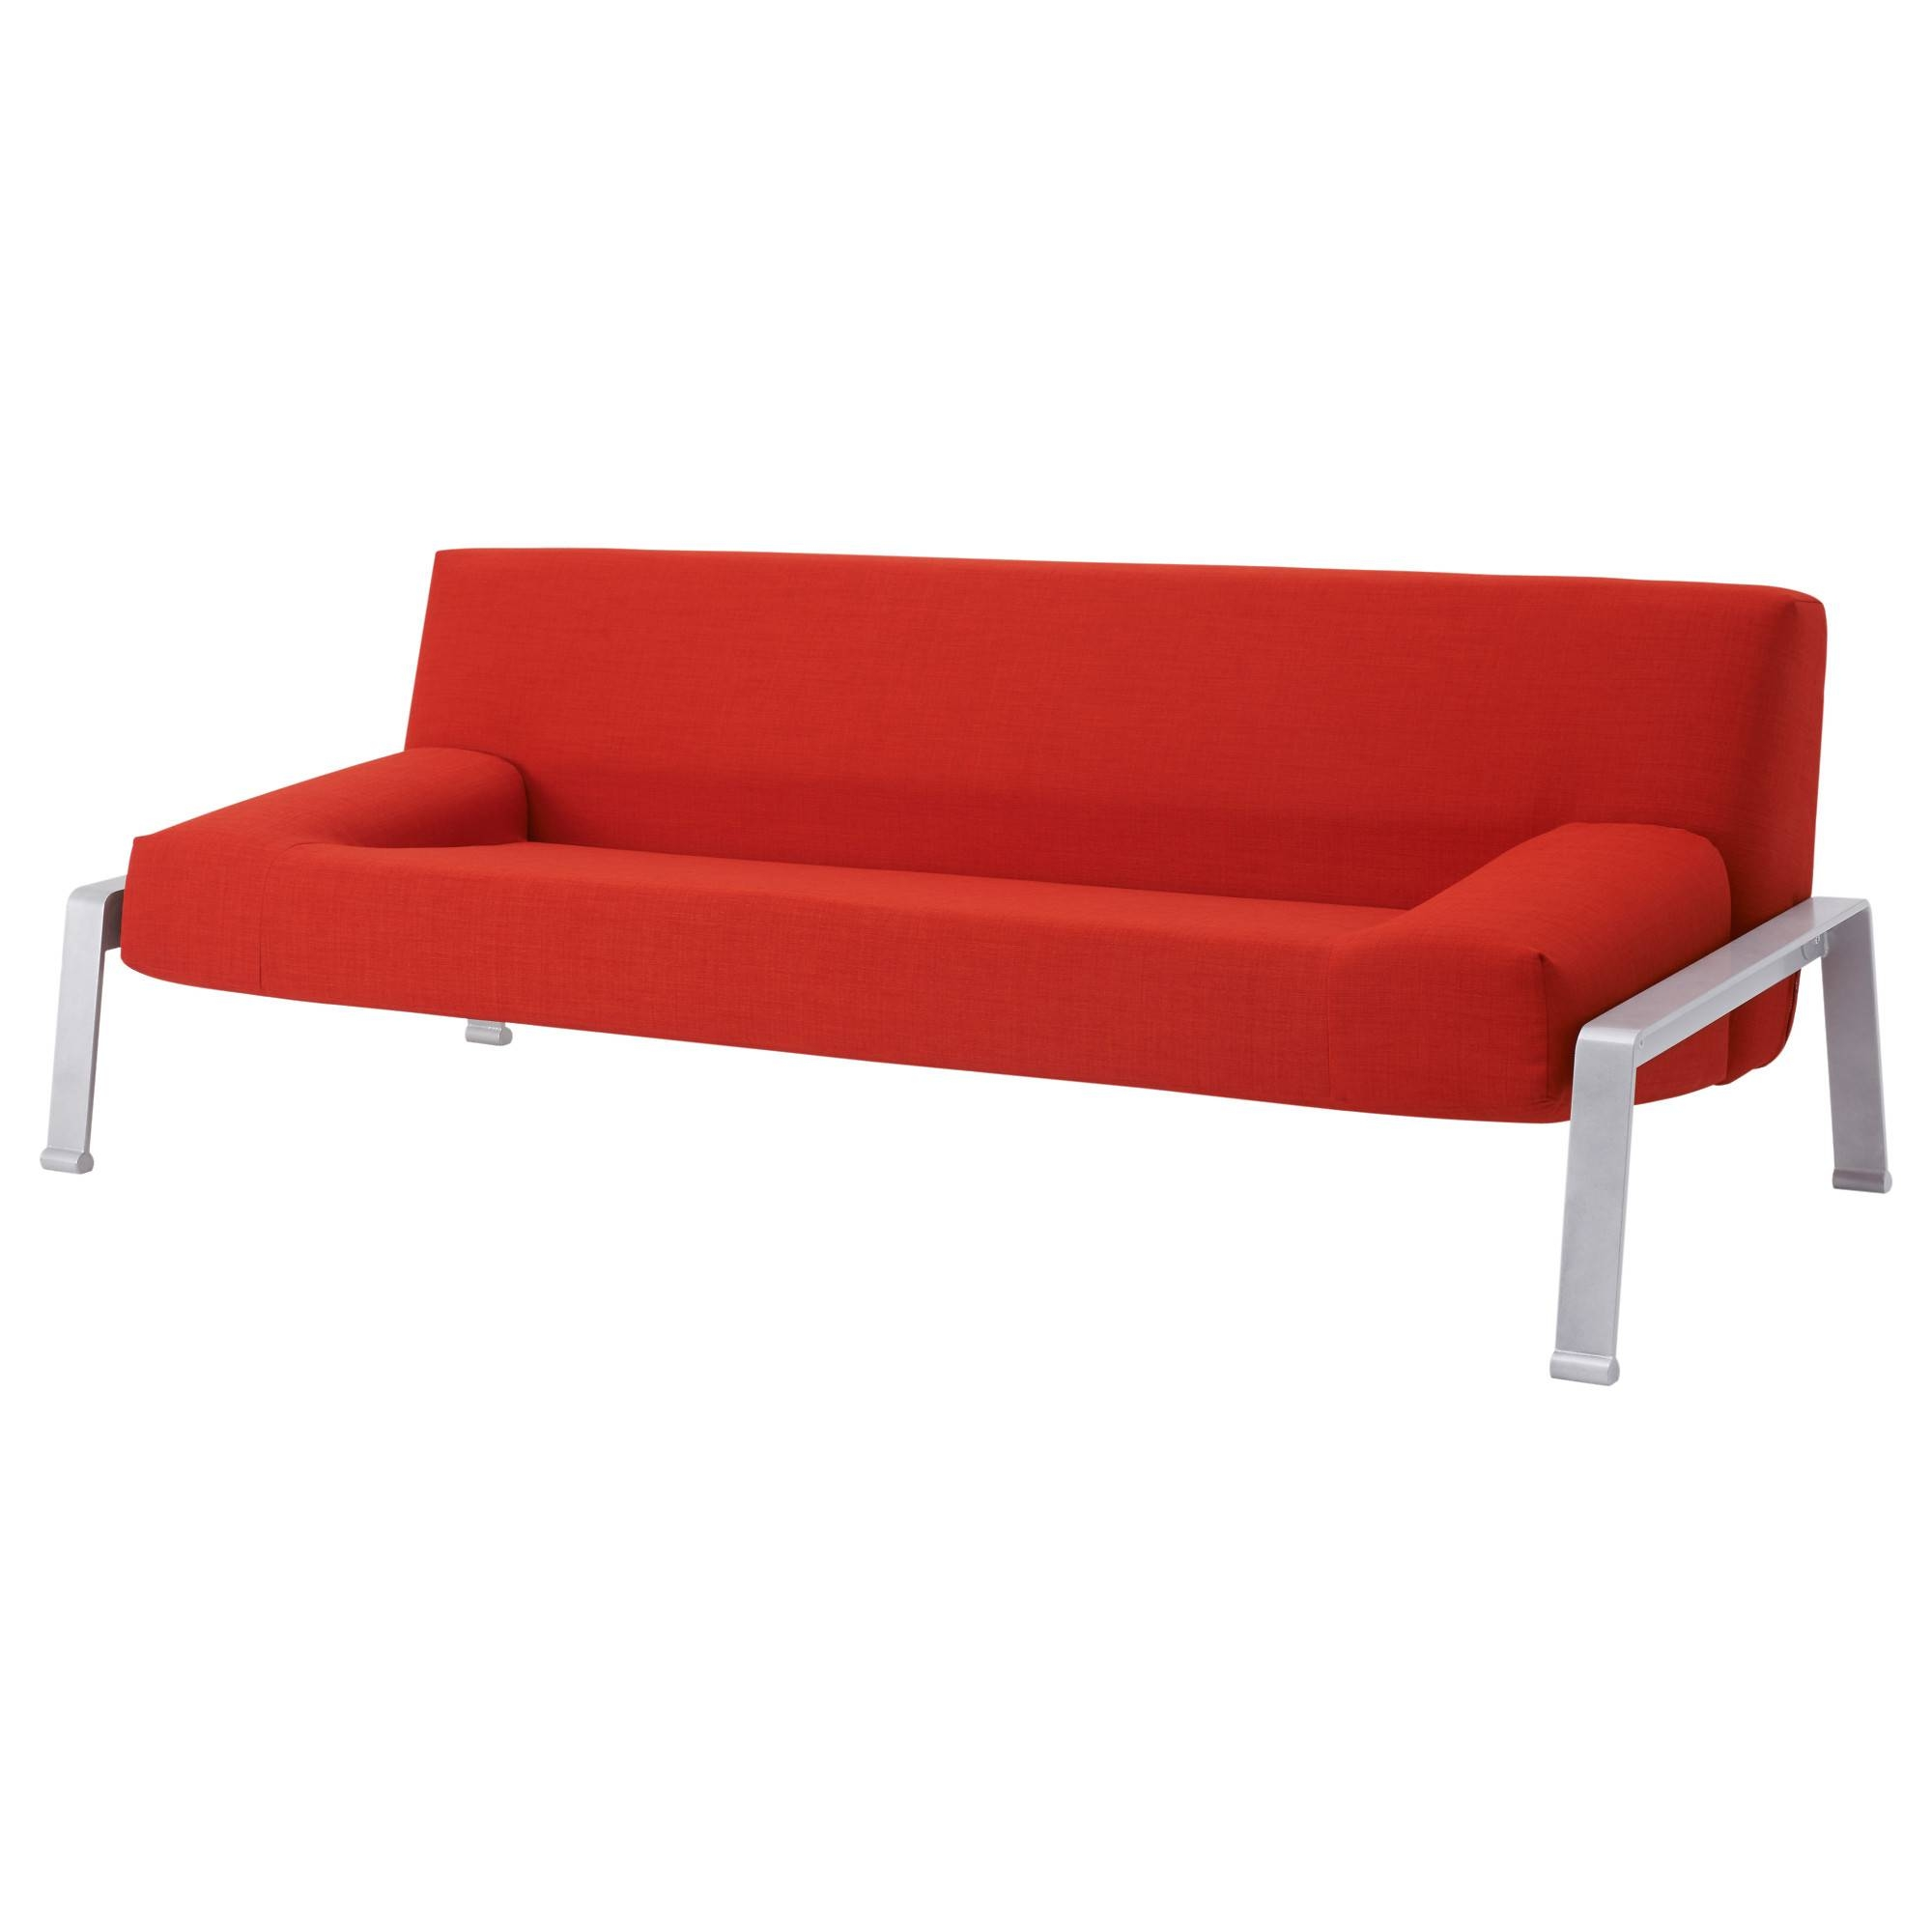 Sofa Beds & Futons - Ikea intended for Red Sleeper Sofa (Image 28 of 30)